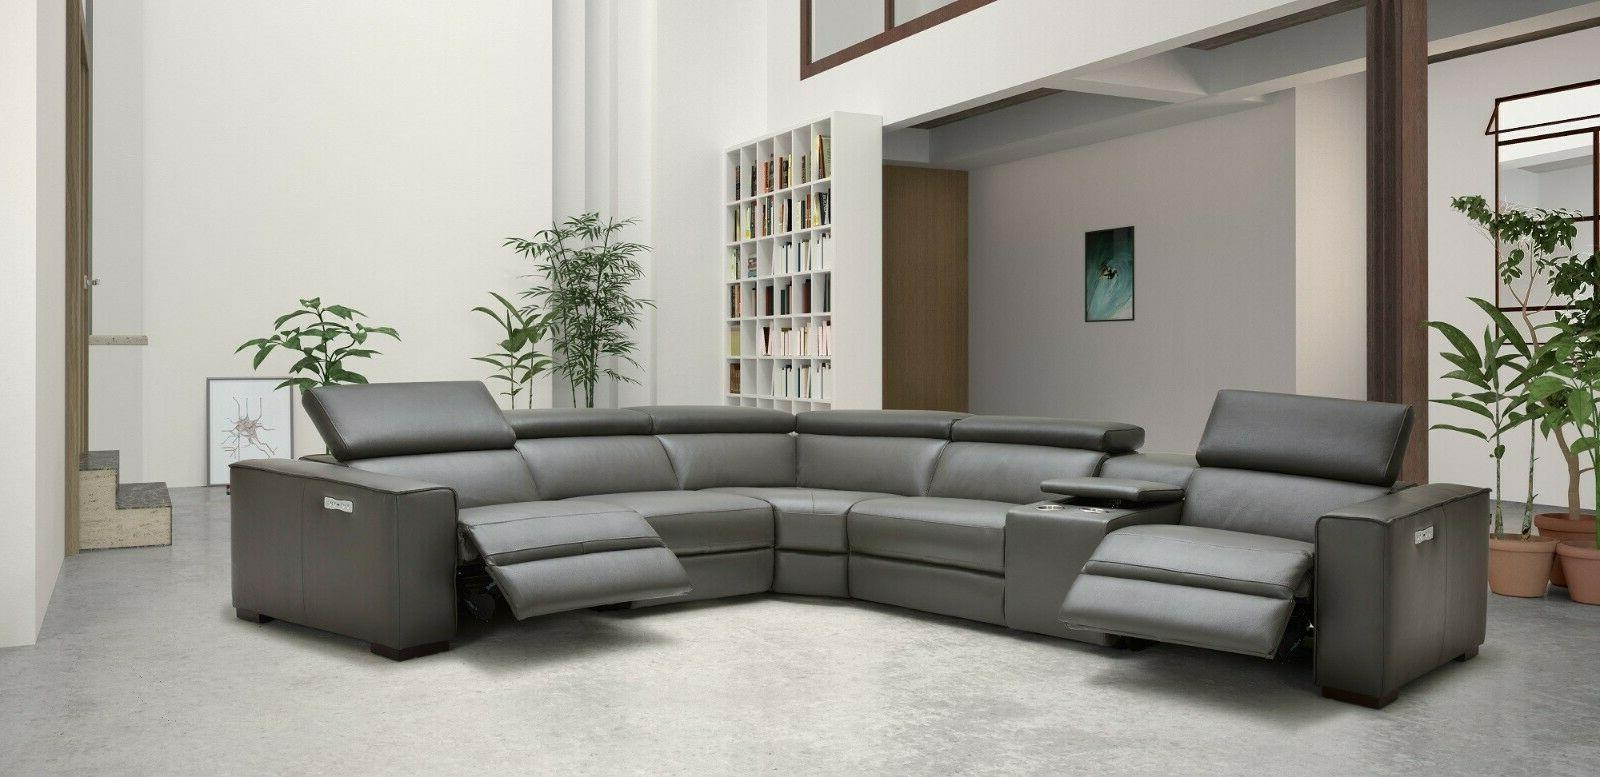 J&M Furniture Picasso Gray Top Motion Sectional Sofa Pieces